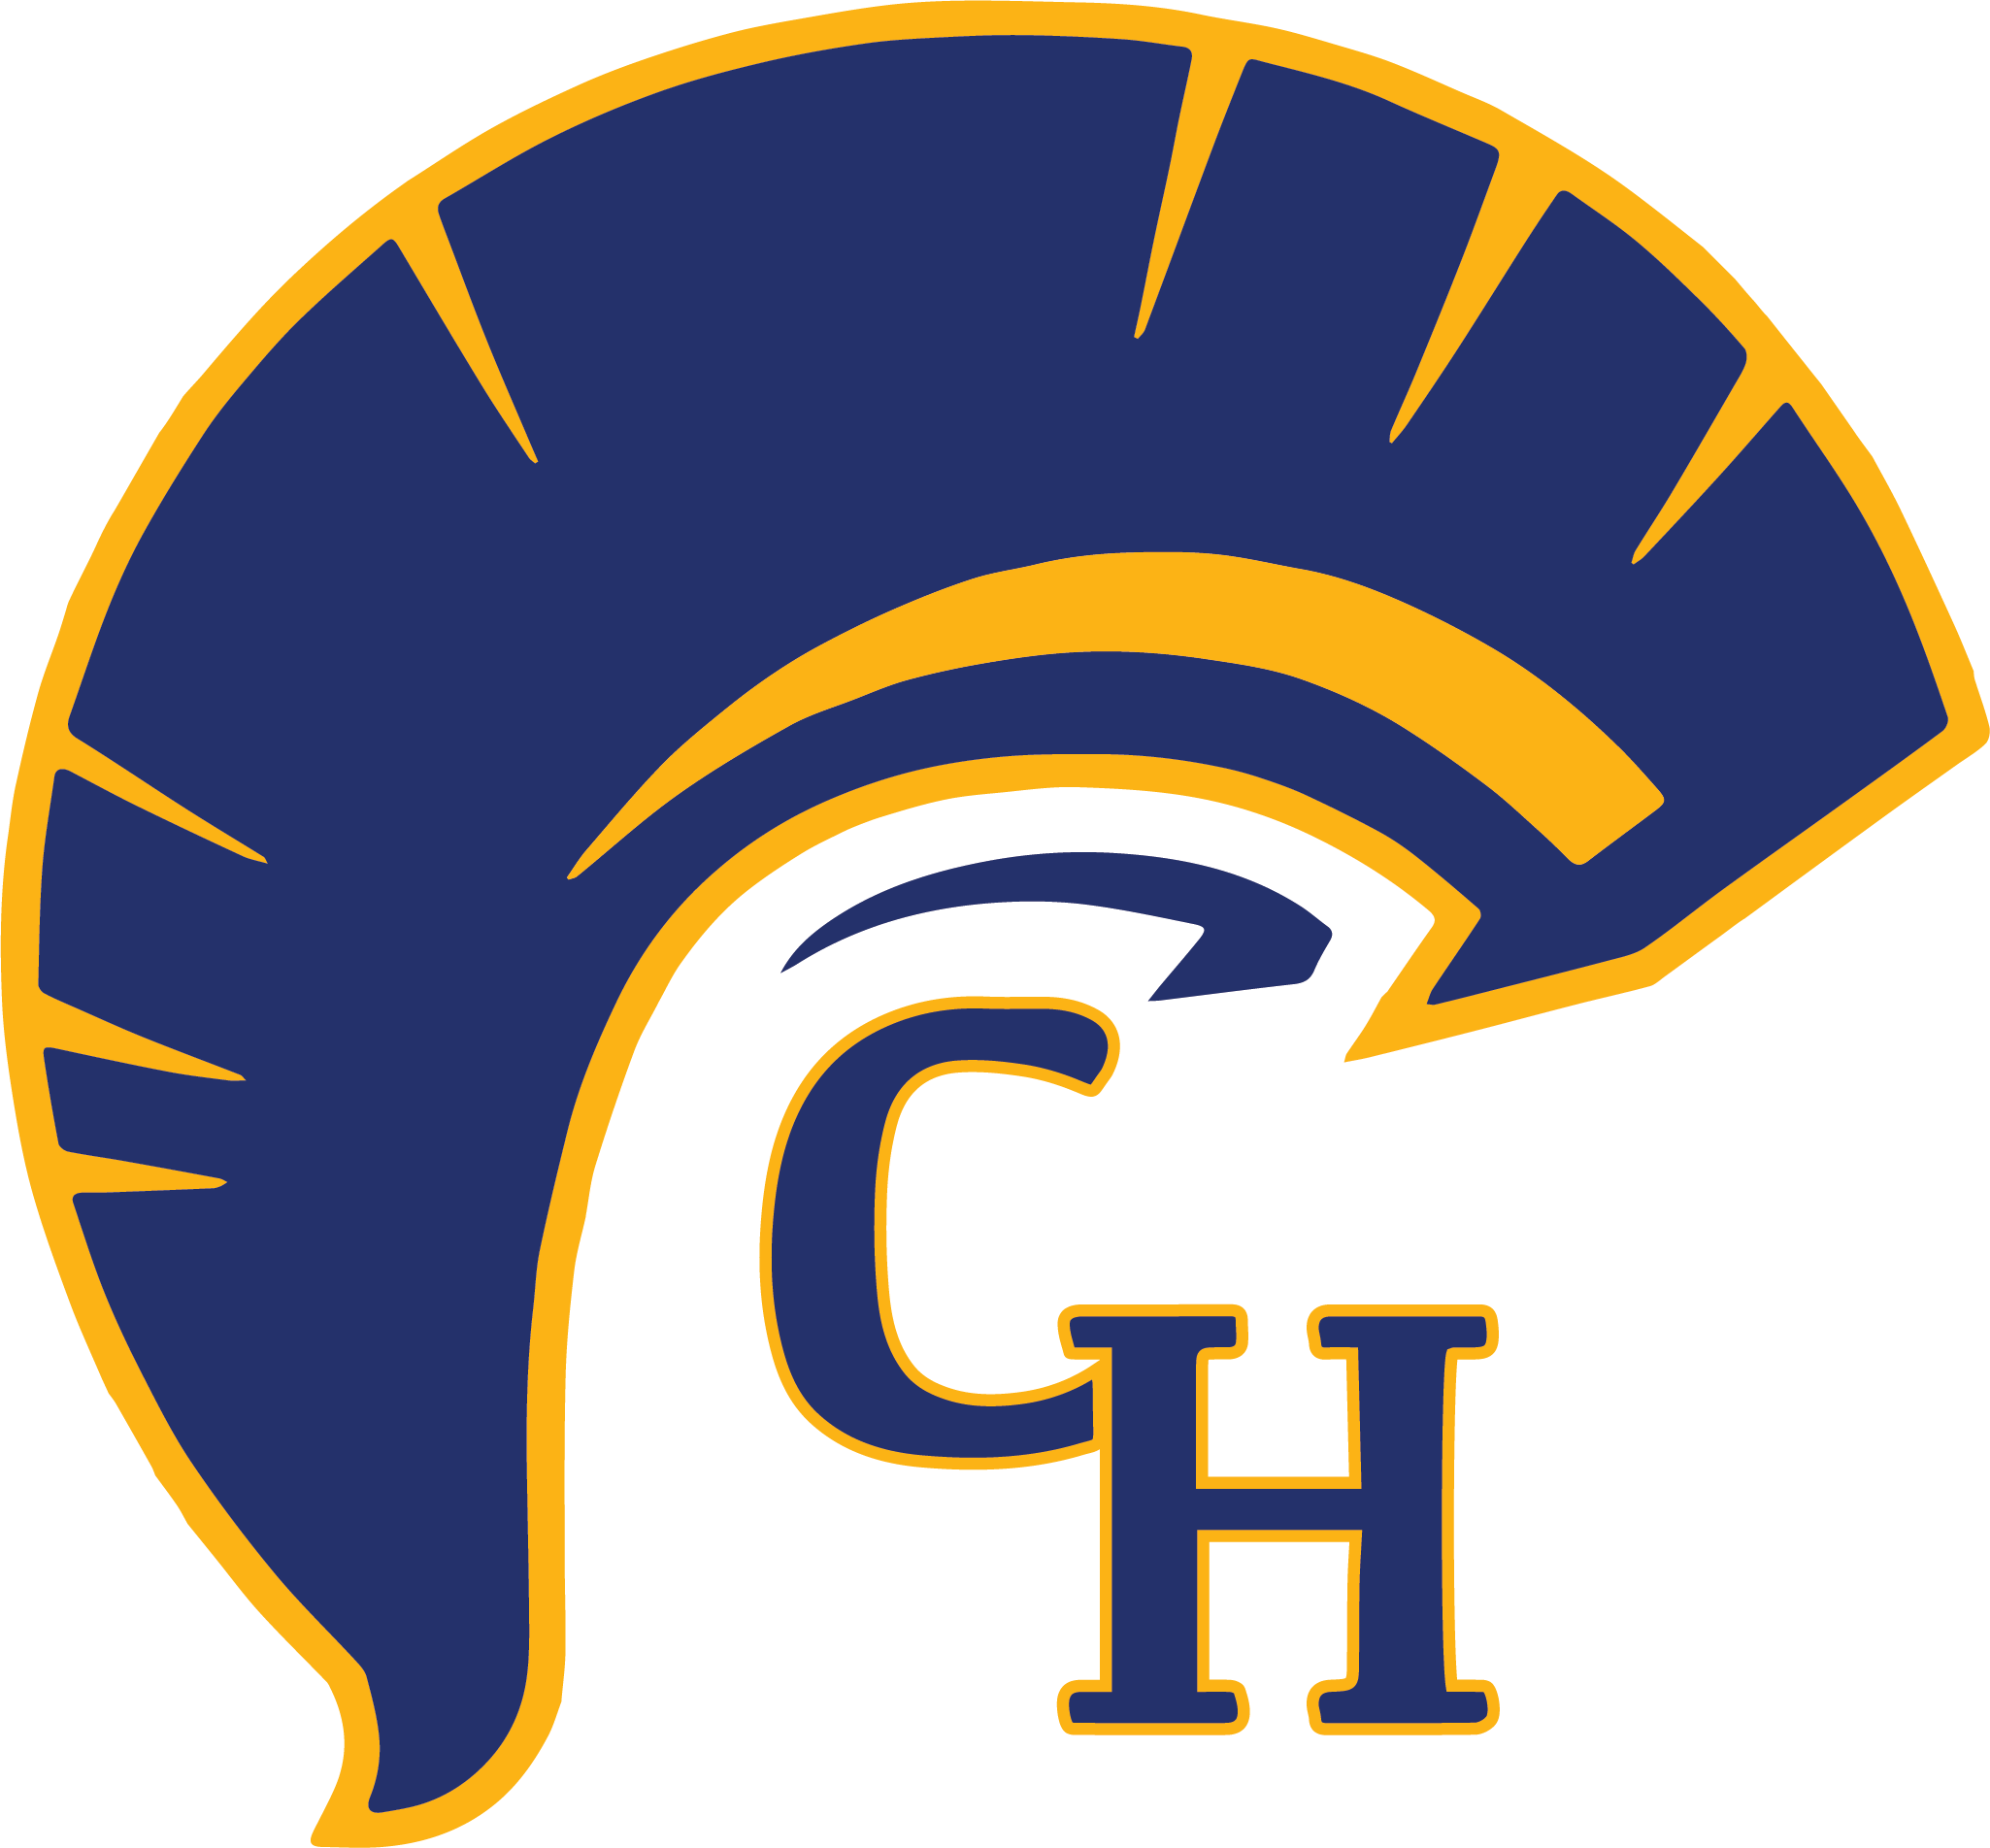 Cottage Hill Football Logo